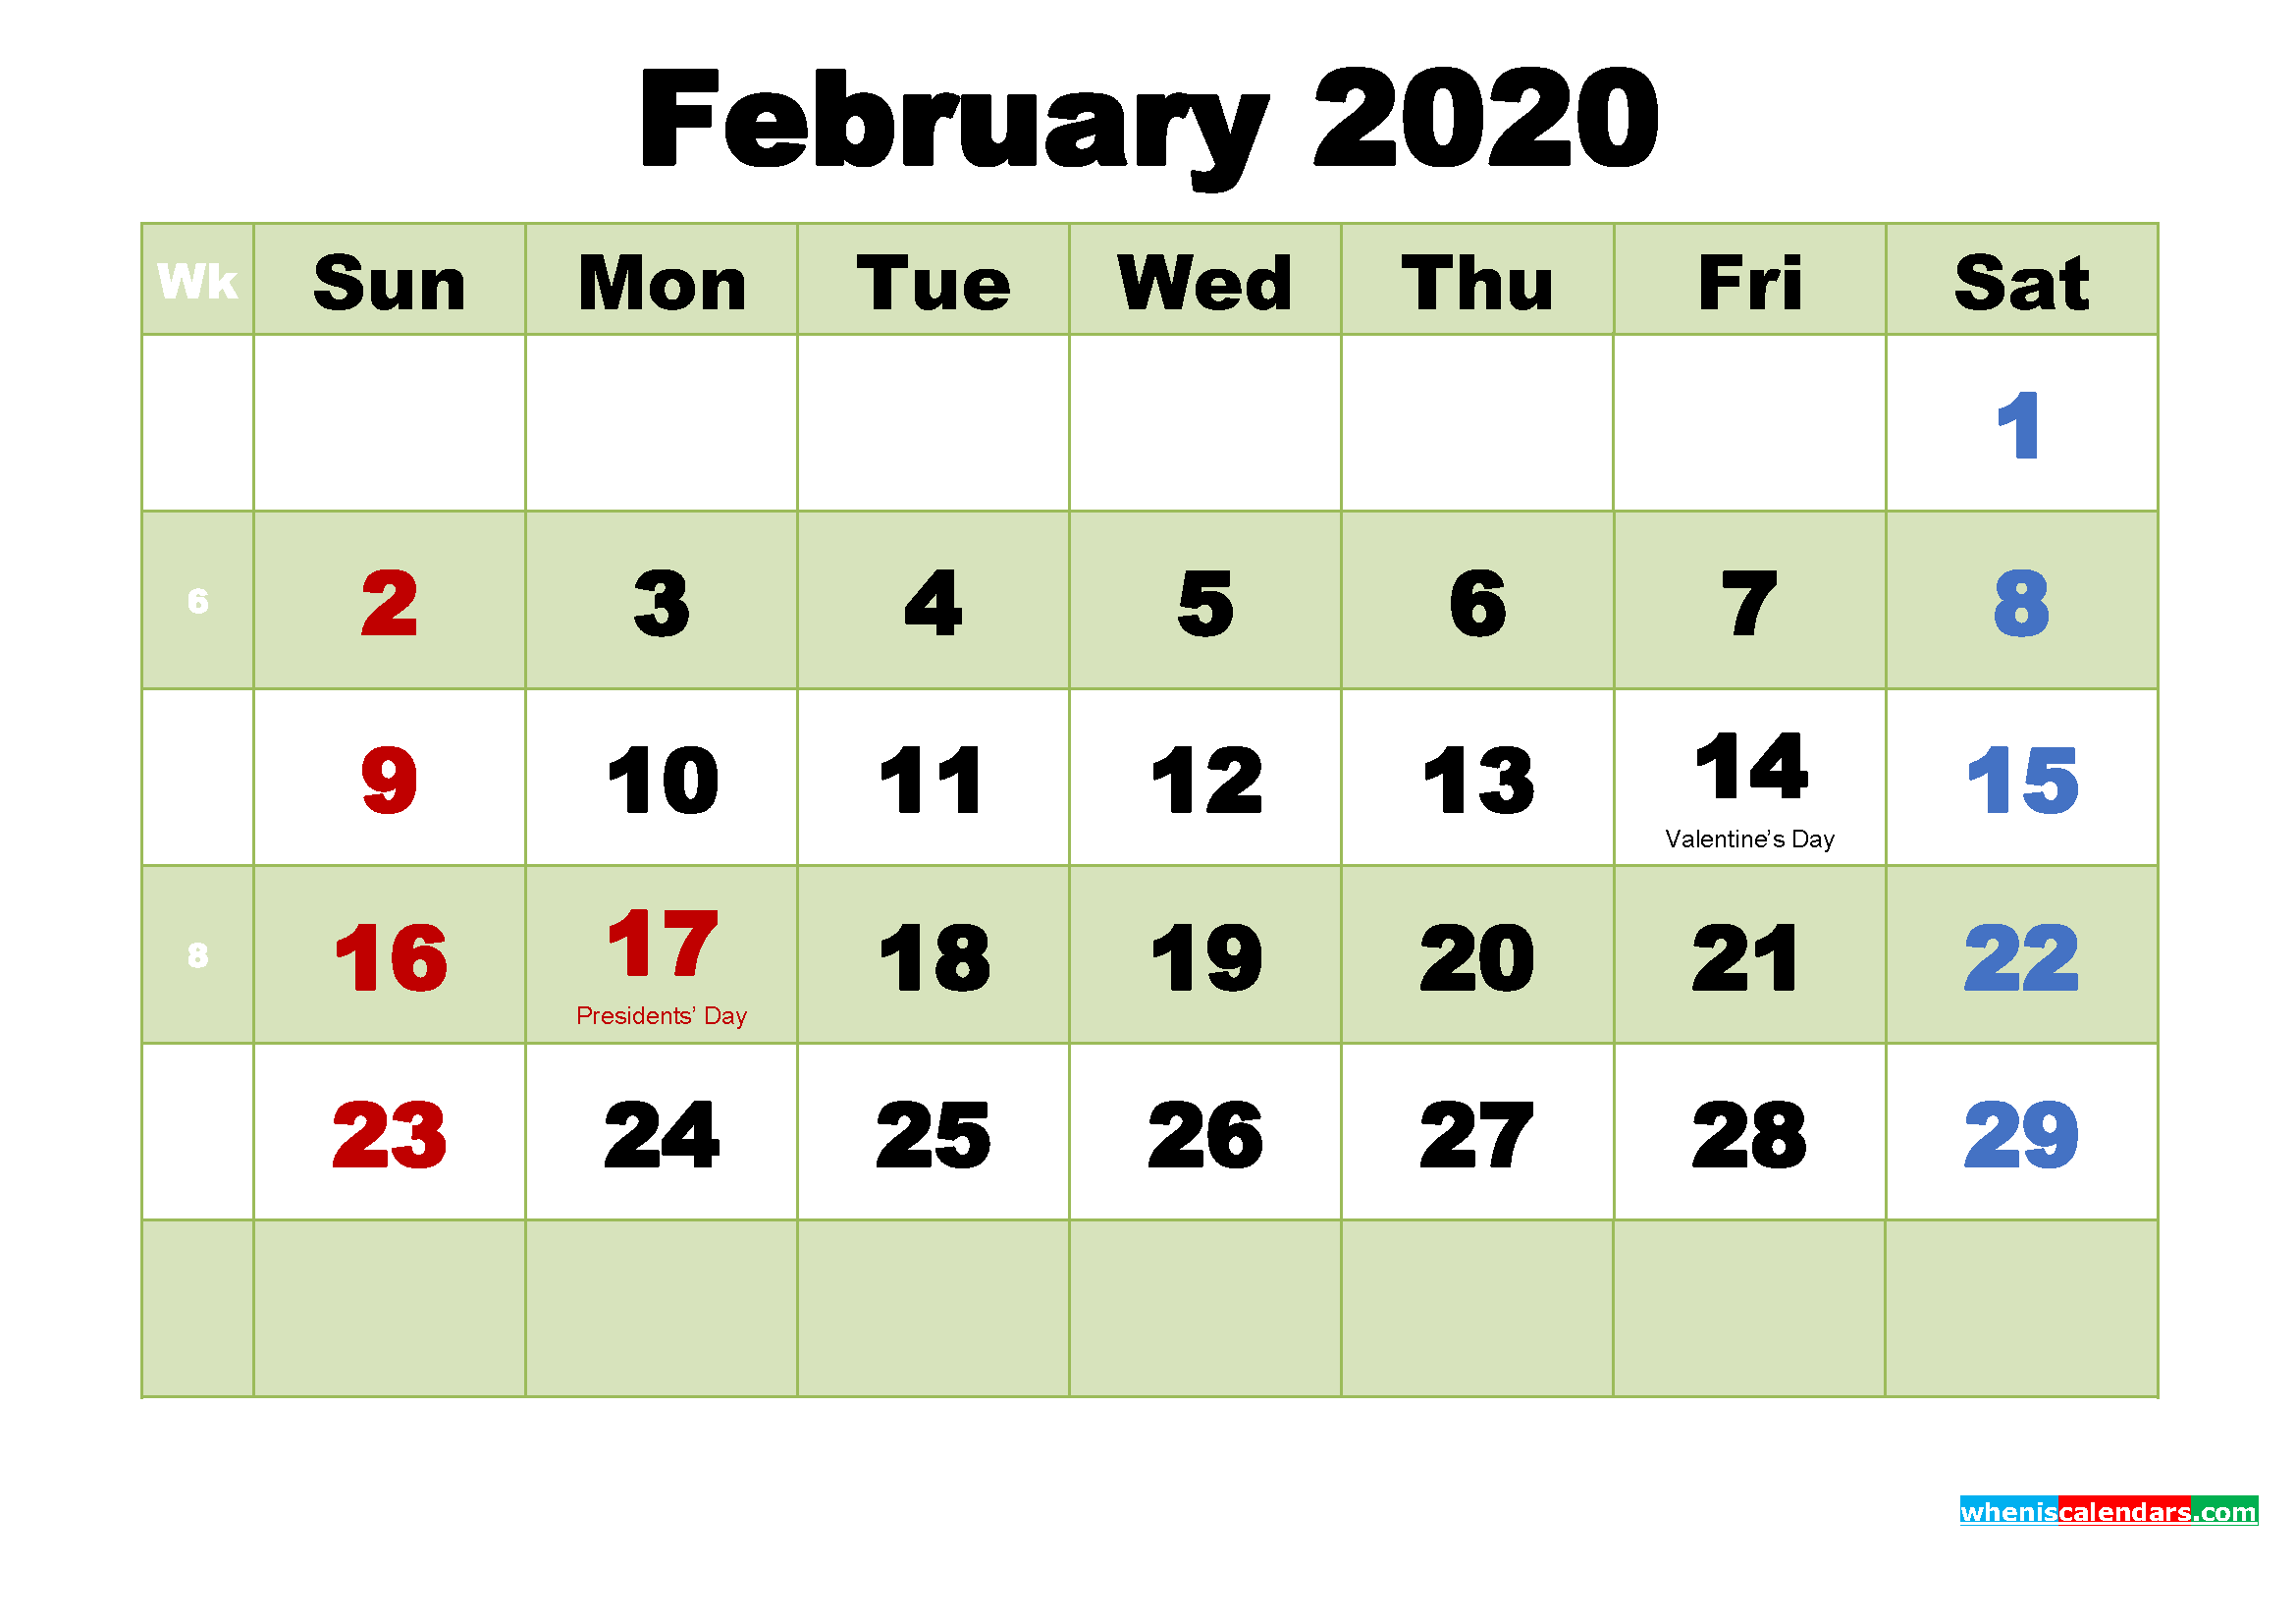 February 2020 Desktop Calendar Free Download